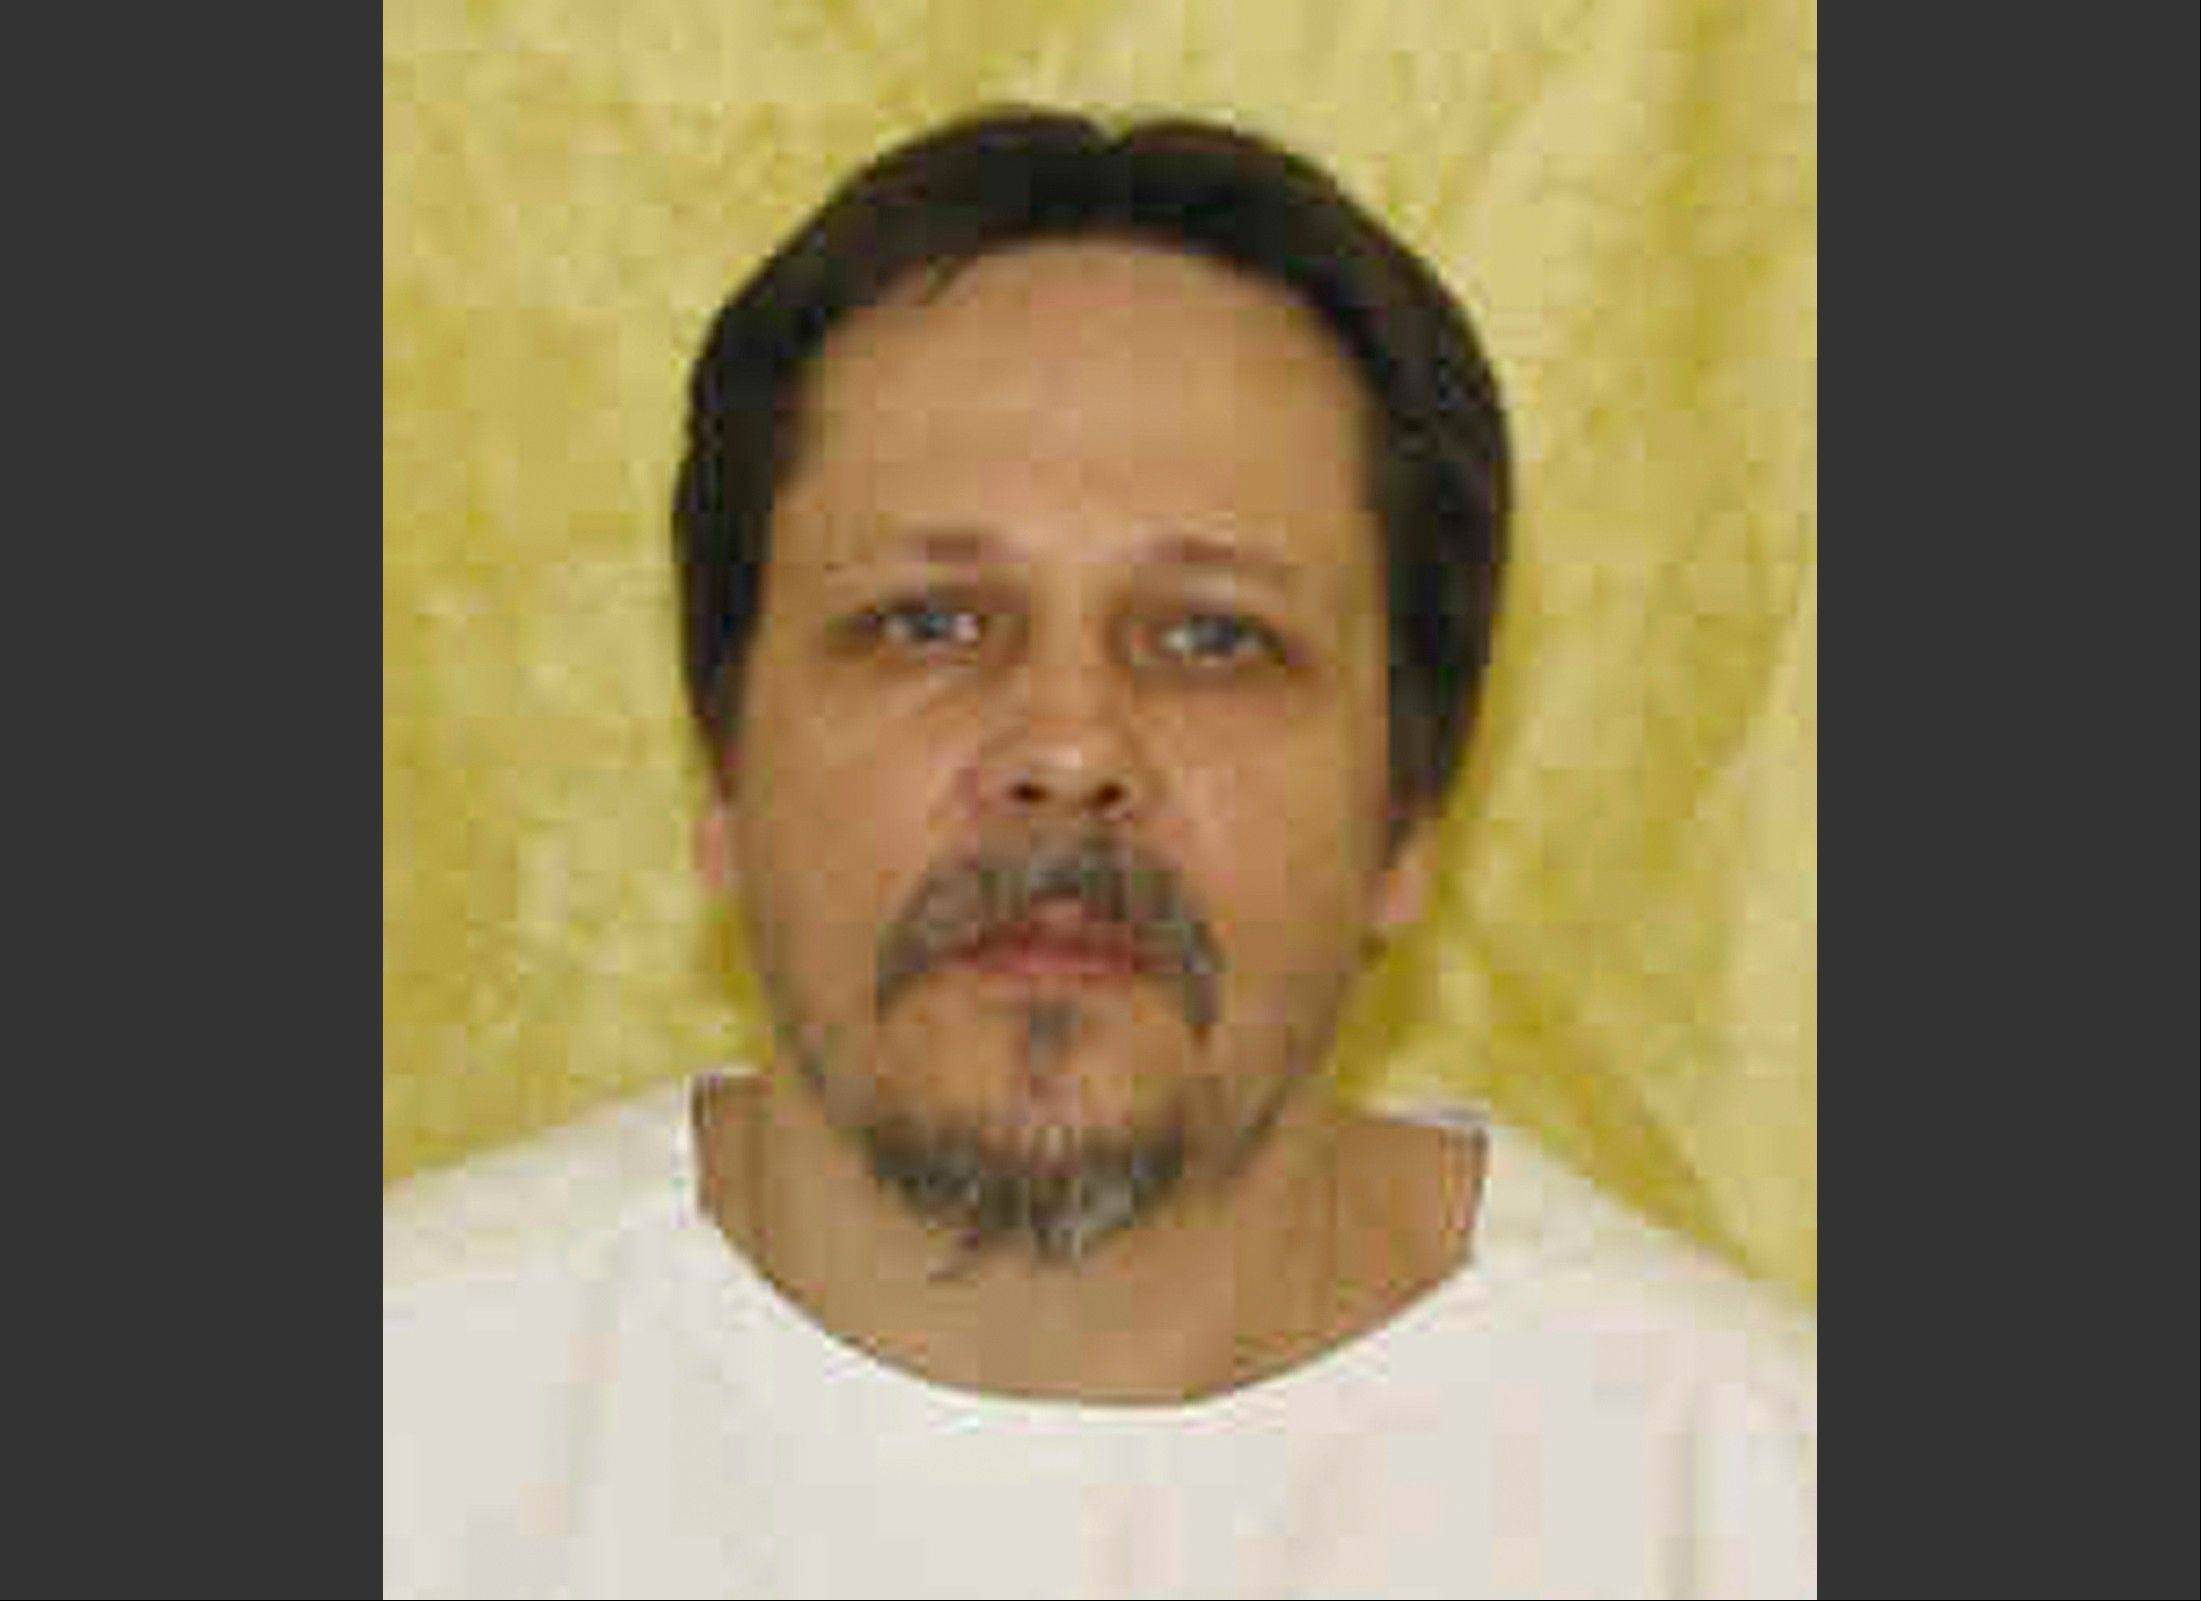 This undated file photo provided by the Ohio Department of Rehabilitation and Correction shows inmate Dennis McGuire who was executed Thursday by means of a two-drug lethal injection process never before tried in the U.S.